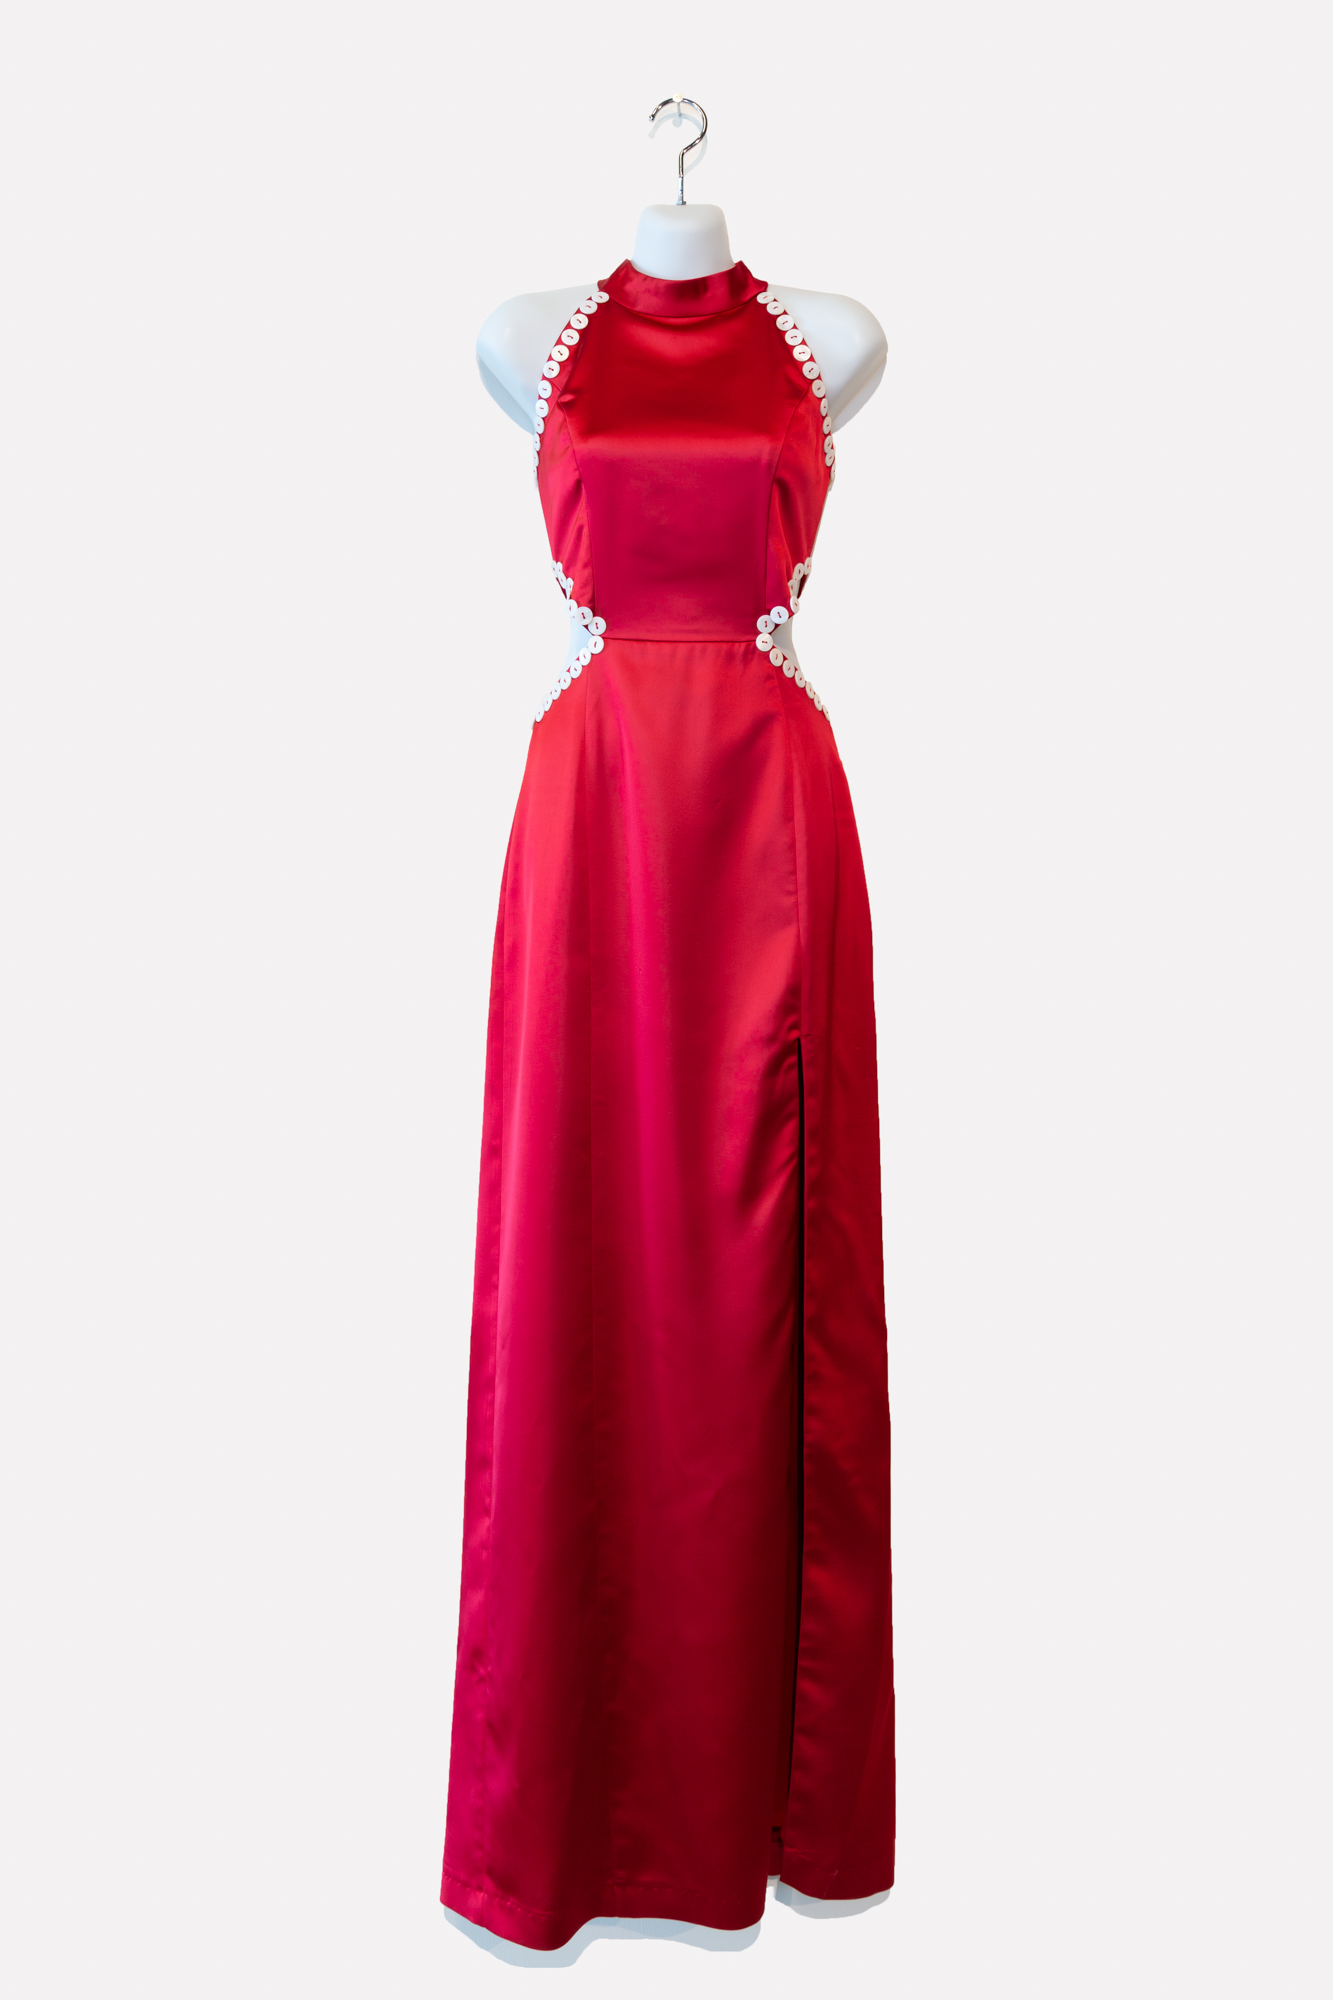 Satin Red Gown